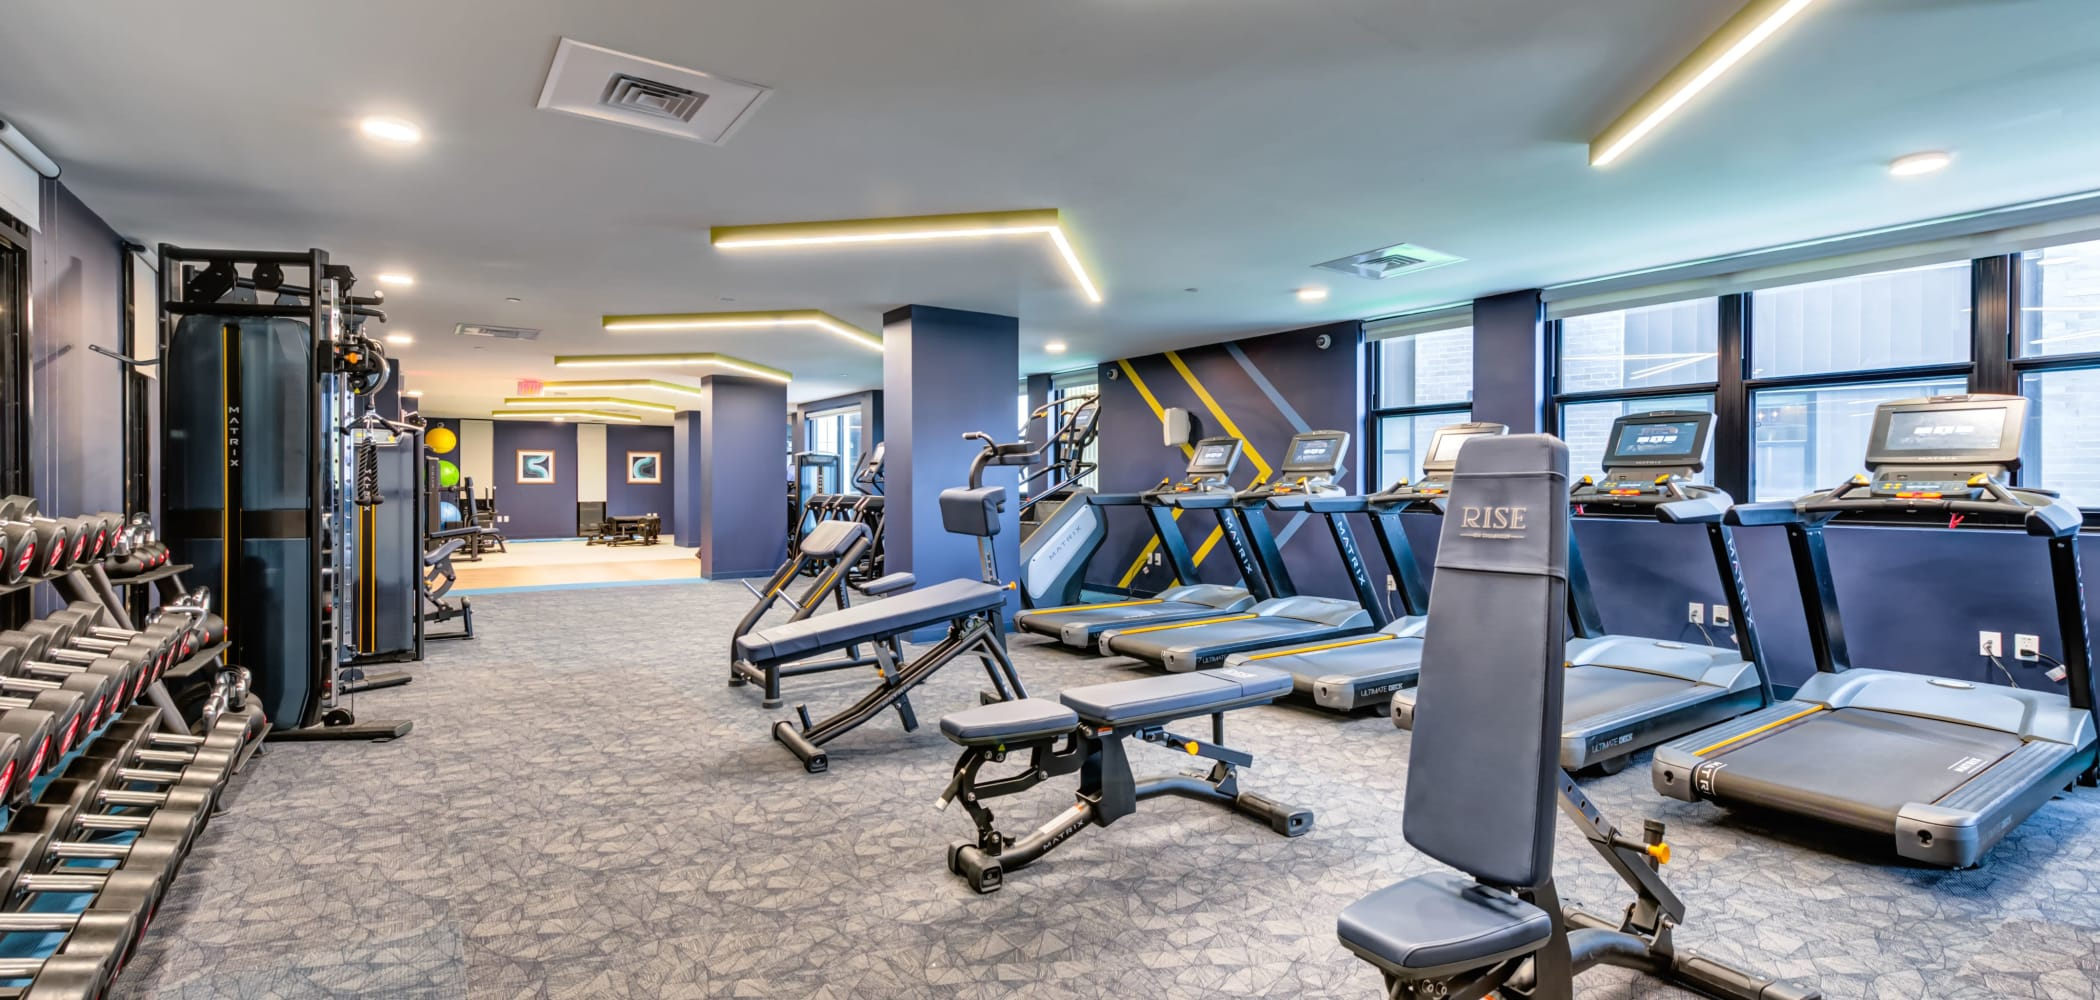 Fully equipped fitness center at RISE on Chauncey in West Lafayette, Indiana